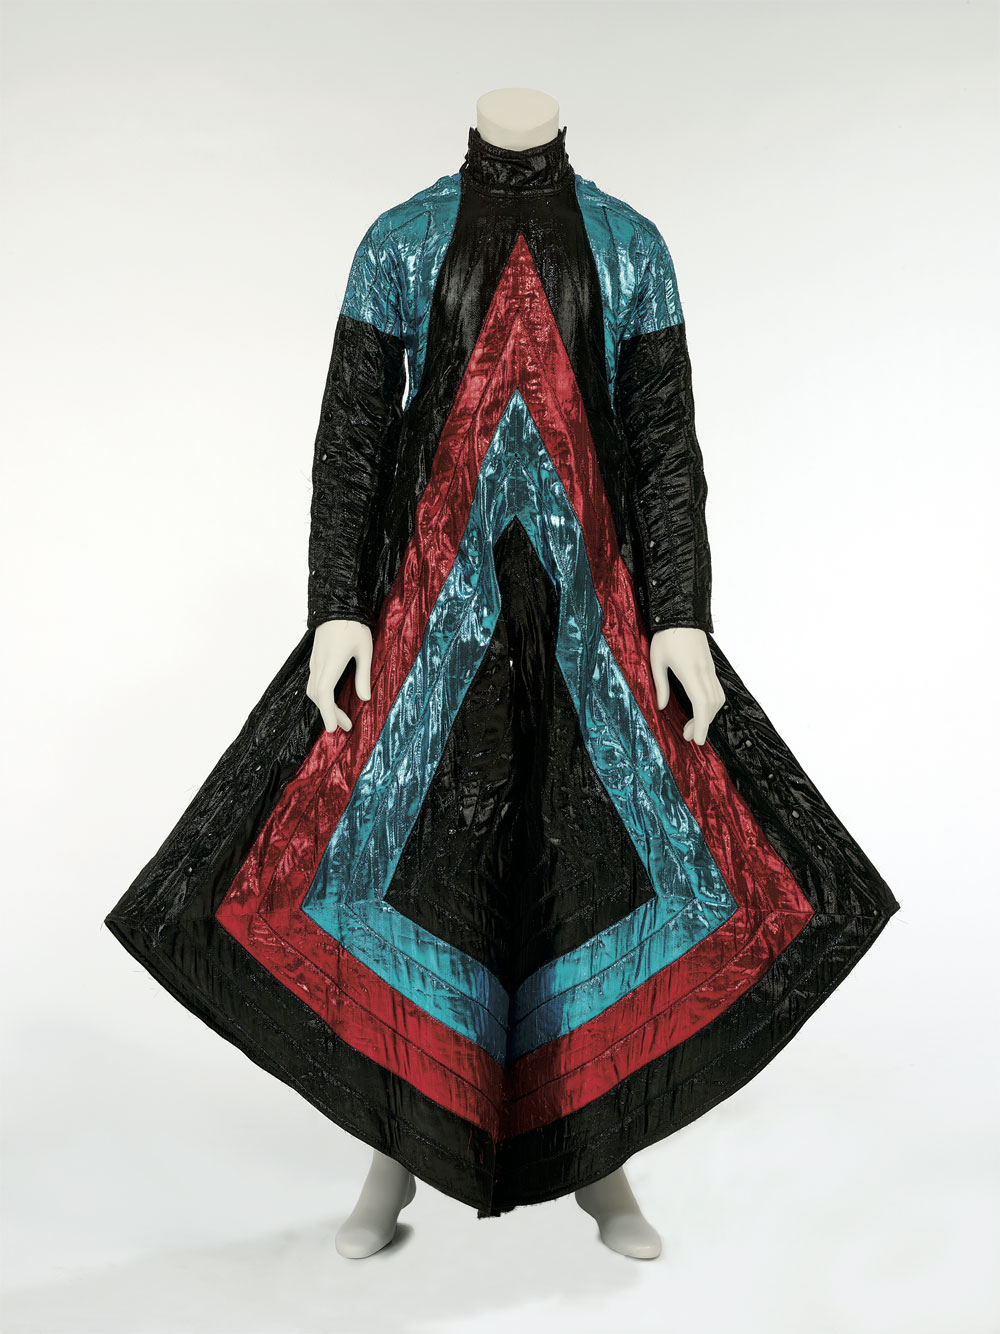 Kansai Yamamoto Fashion In Motion: Text / Exhibition: 'David Bowie Is' At The Australian